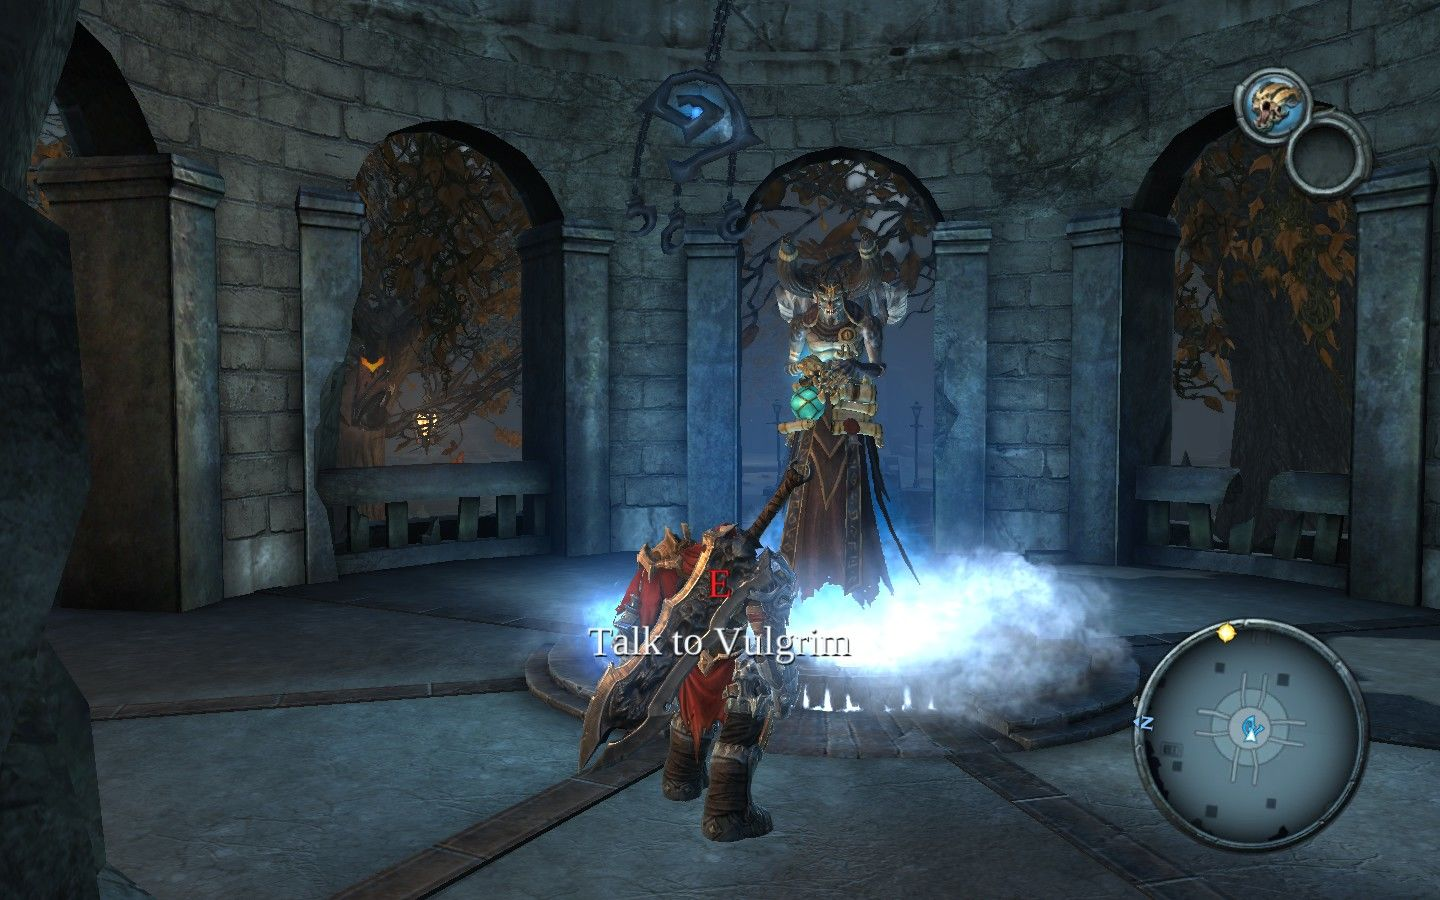 Darksiders Windows Your best and only friend, the merchant.